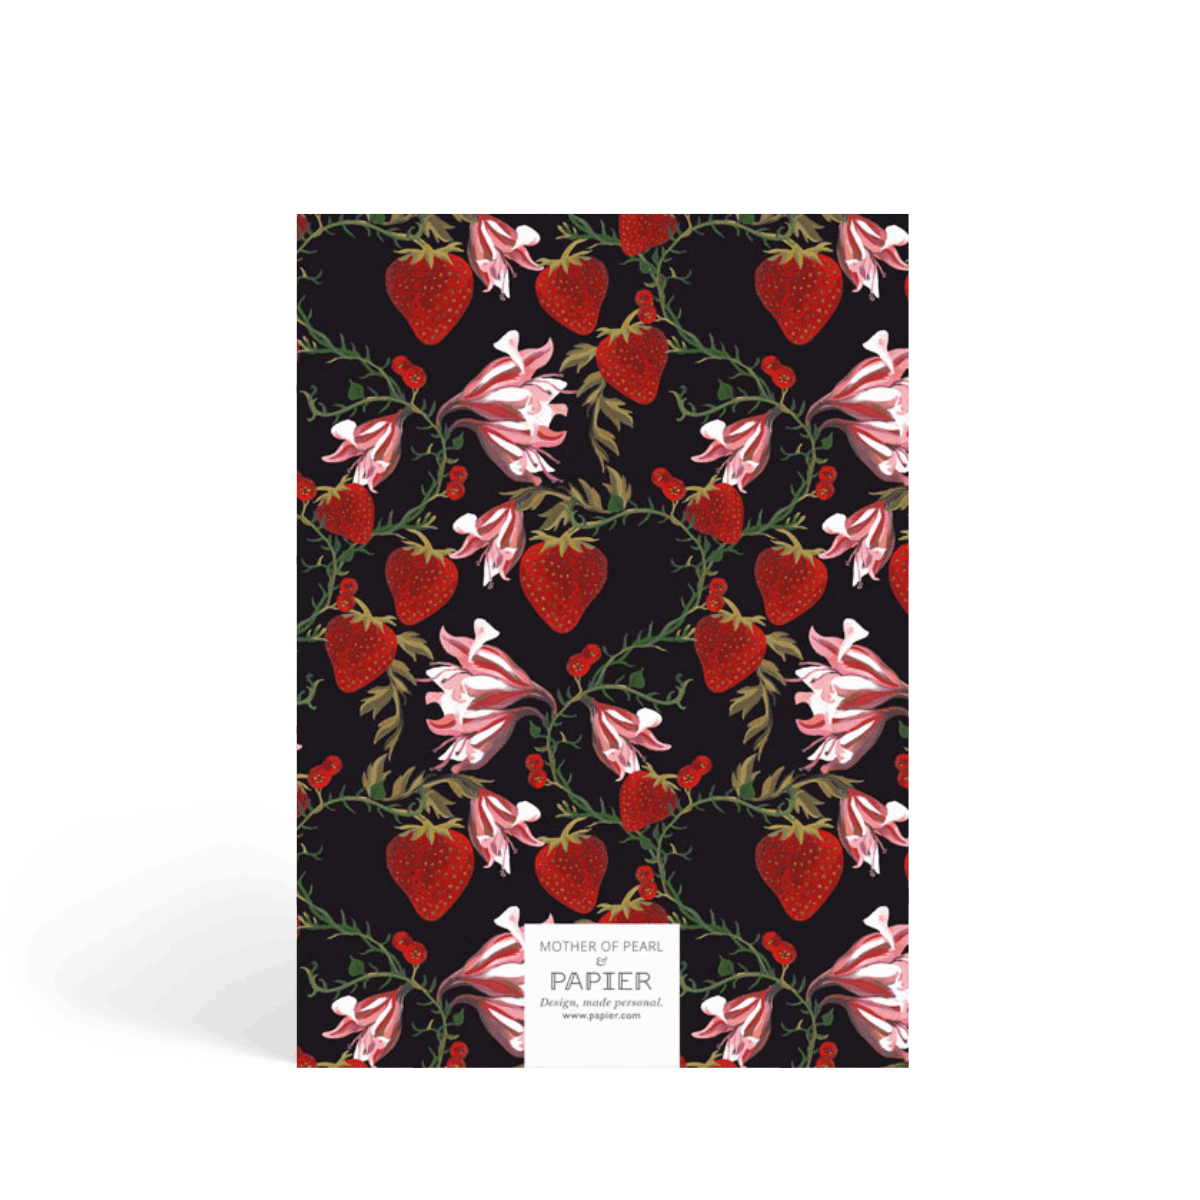 Https%3a%2f%2fwww.papier.com%2fproduct image%2f49544%2f5%2fstrawberry floral navy 12167 back 1539688113.png?ixlib=rb 1.1